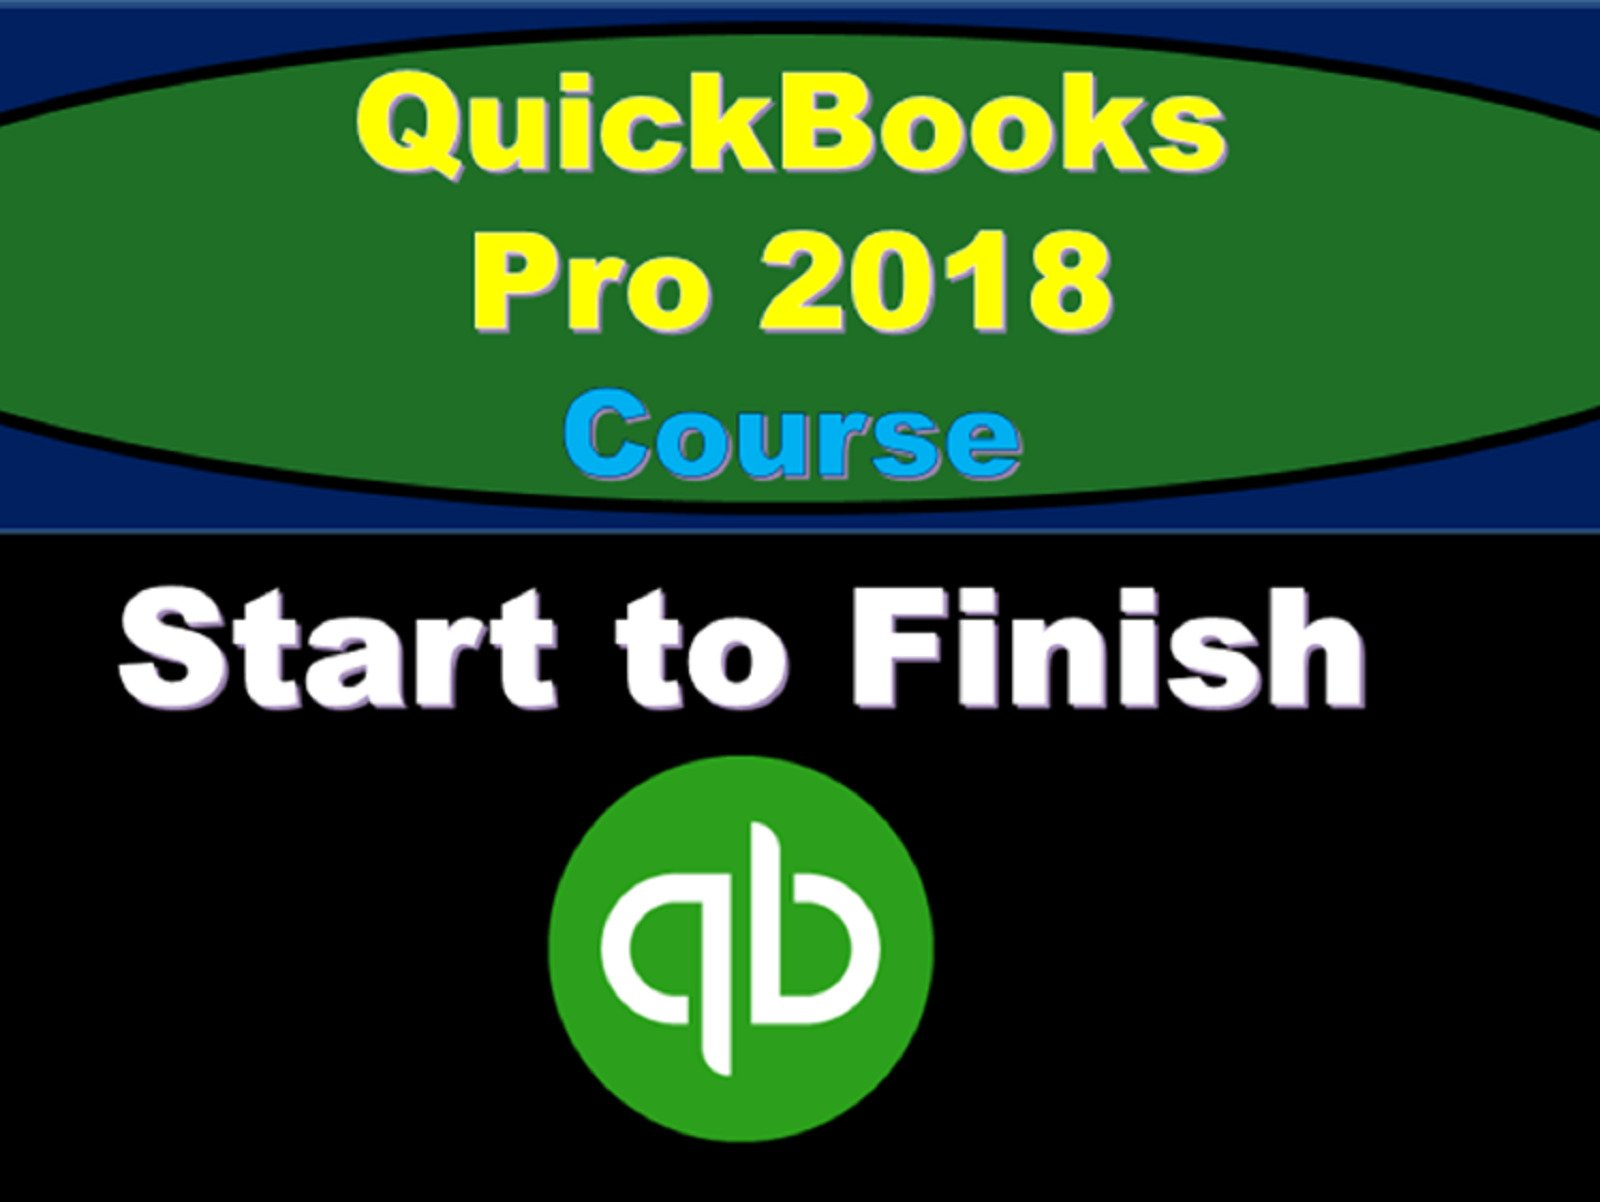 QuickBooks Pro 2018 Course - Season 5